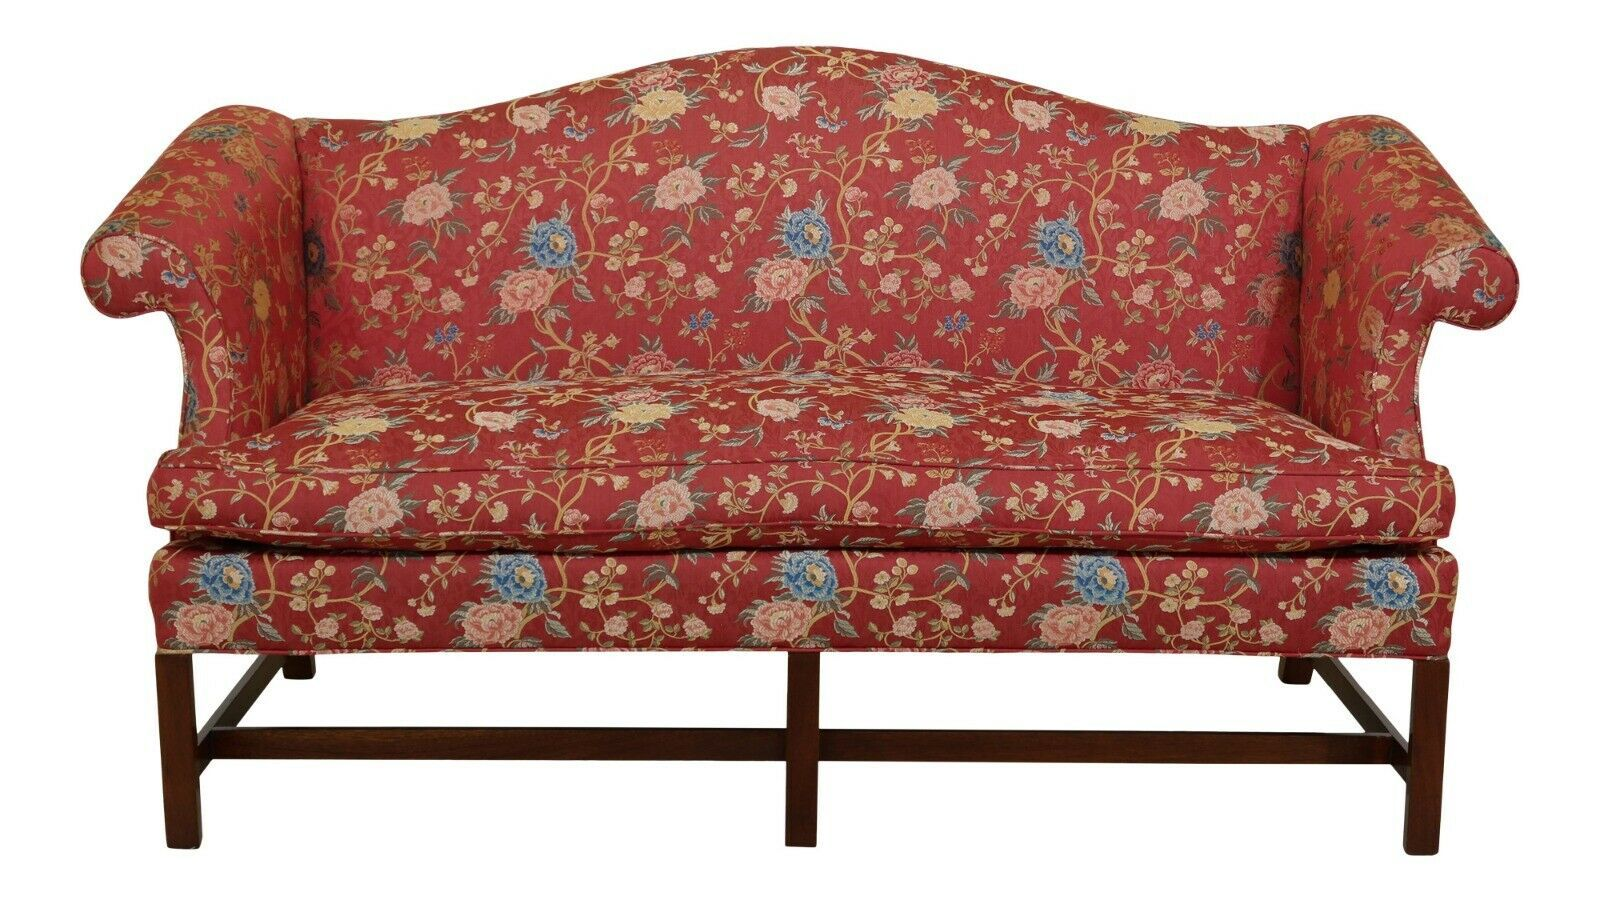 48945ec Chippendale Camelback Mahogany Sofa In Scalamandre Fabric Sofas Living Room Ideas Of Sofas Living Room Sof In 2020 Living Room Sofa Fabric Sofa Love Seat